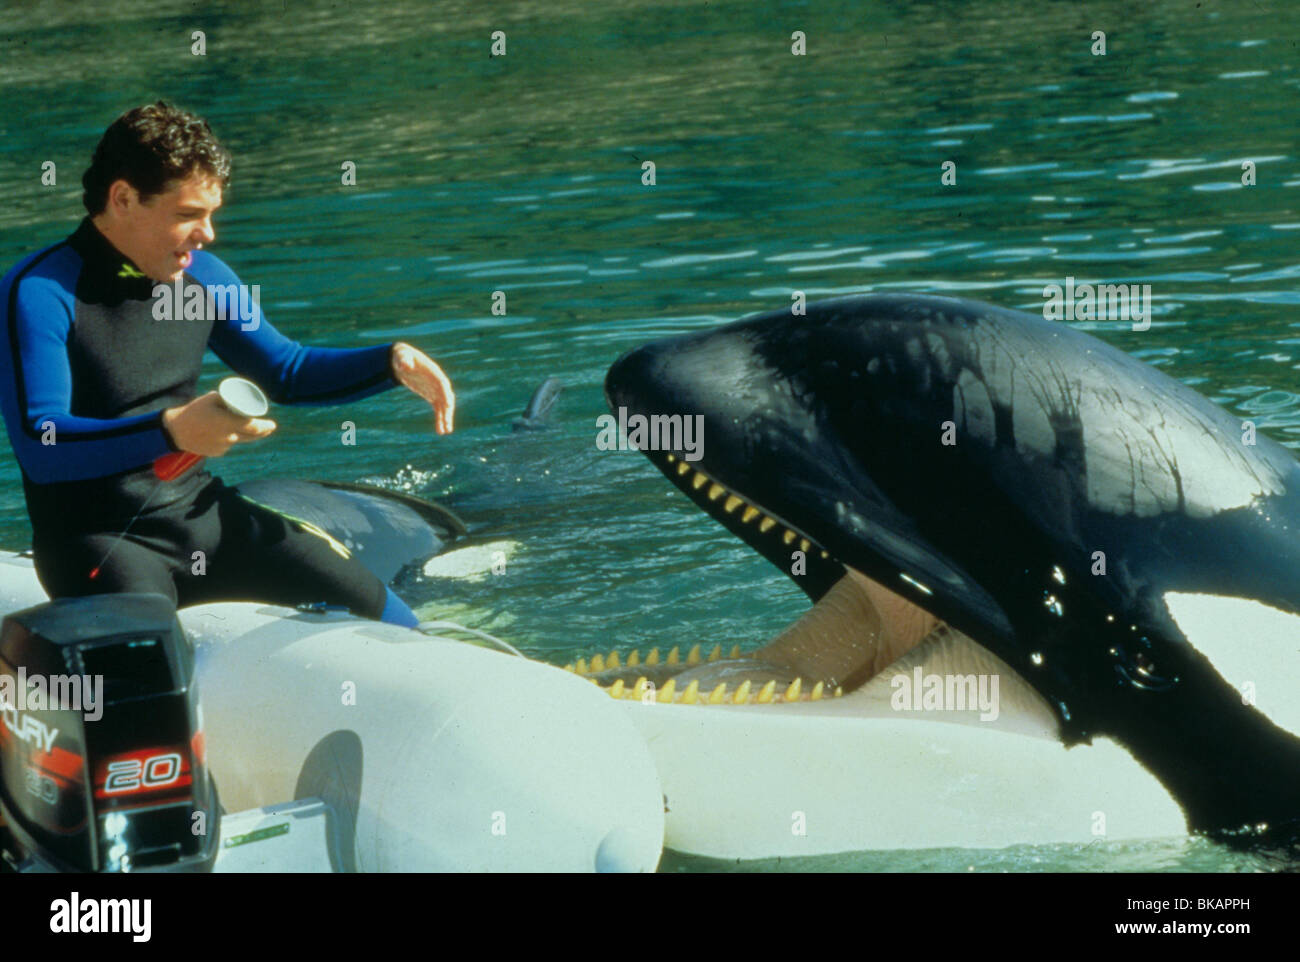 Free Willy 3: The Rescue - vpro cinema - VPRO